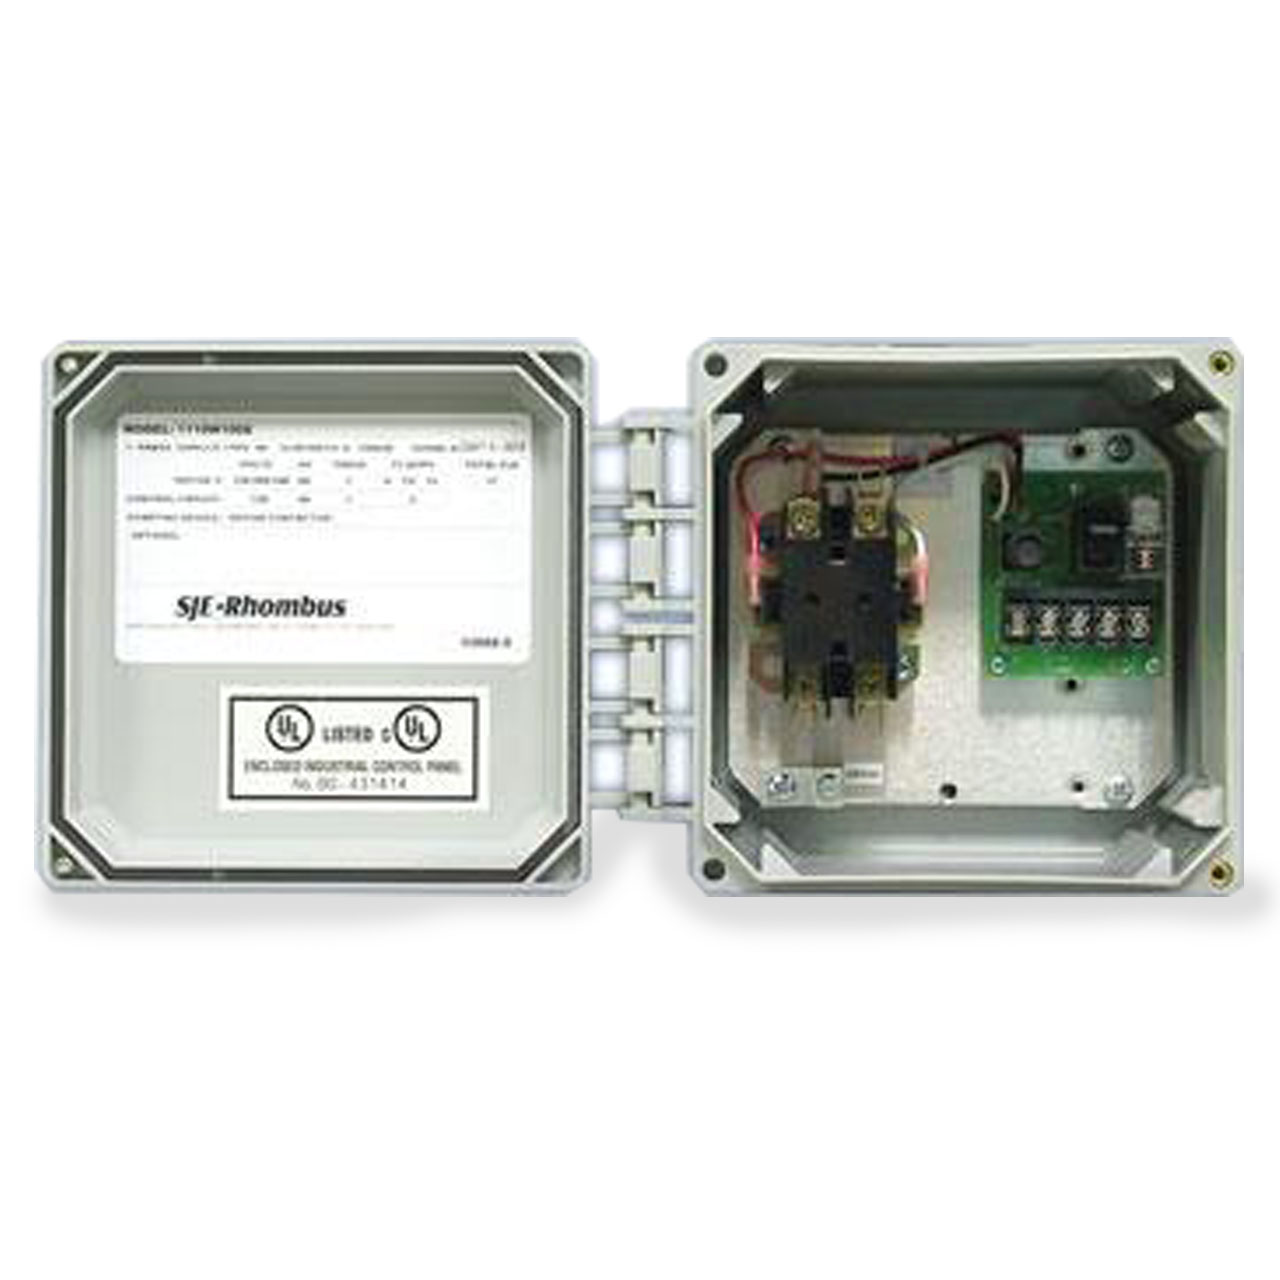 Zoeller Duplex Pump Controller Wiring Diagram as well Orenco S1 Wiring Diagram Float likewise Orenco Wiring Diagrams further Power Awning Wiring Diagram also Wiring Diagram Control Panel. on orenco control panel wiring diagram